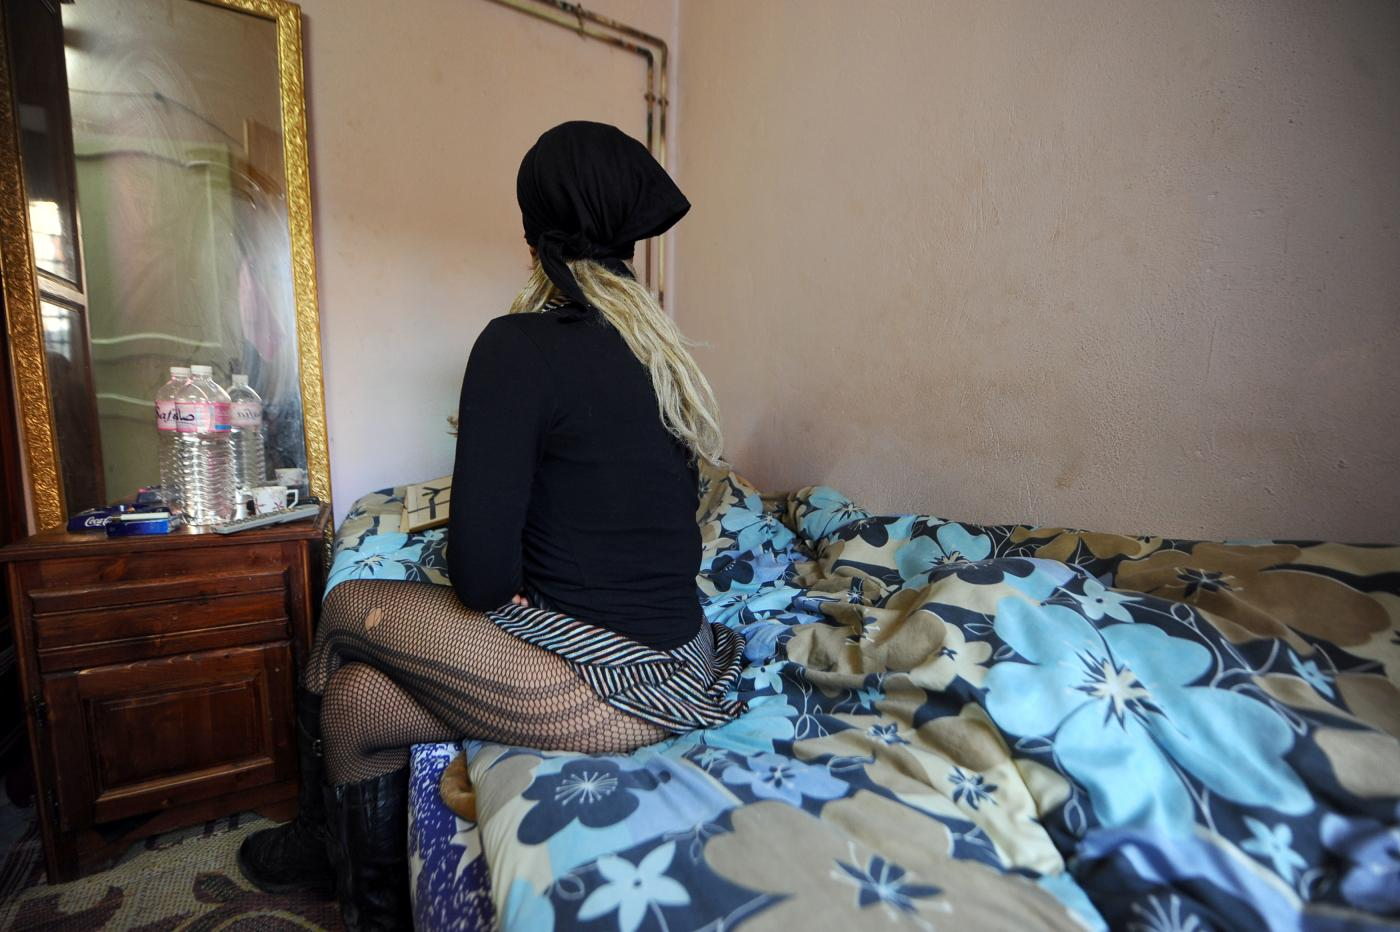 Tunisia's Sex Workers Face 'Moral Crusade' And Precariousness